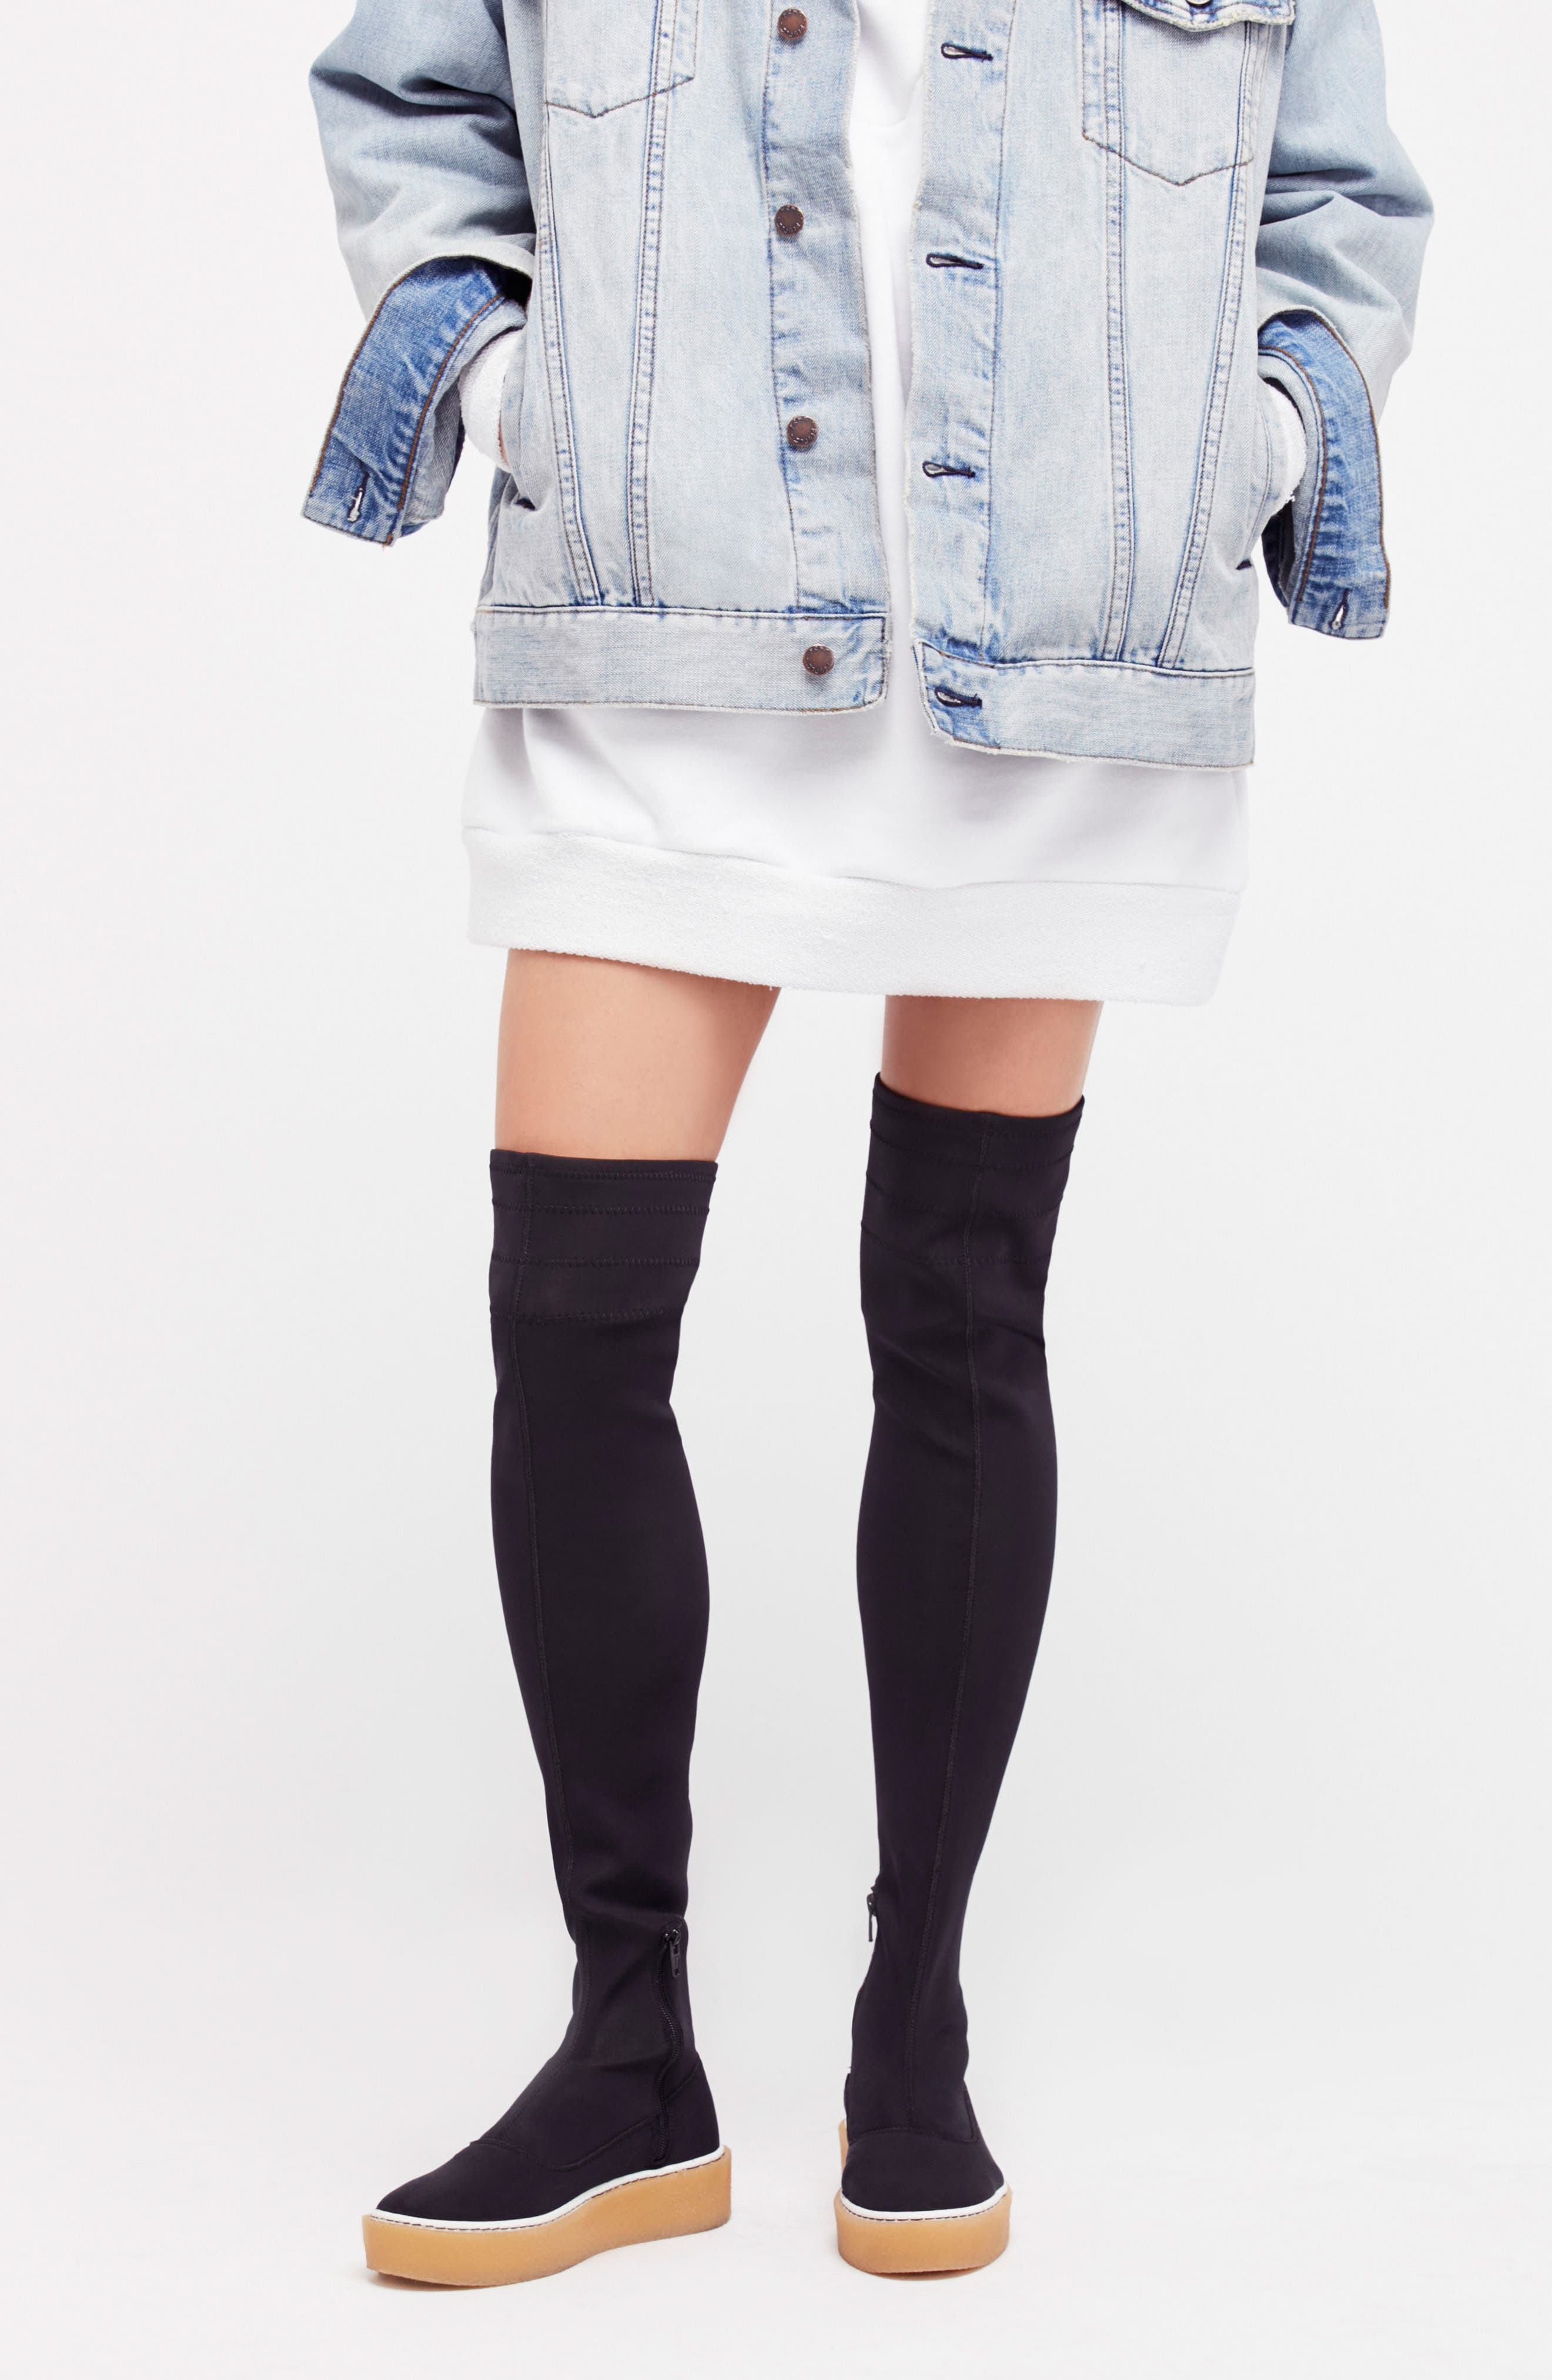 Outer Limits Thigh High Boot,                             Alternate thumbnail 8, color,                             001